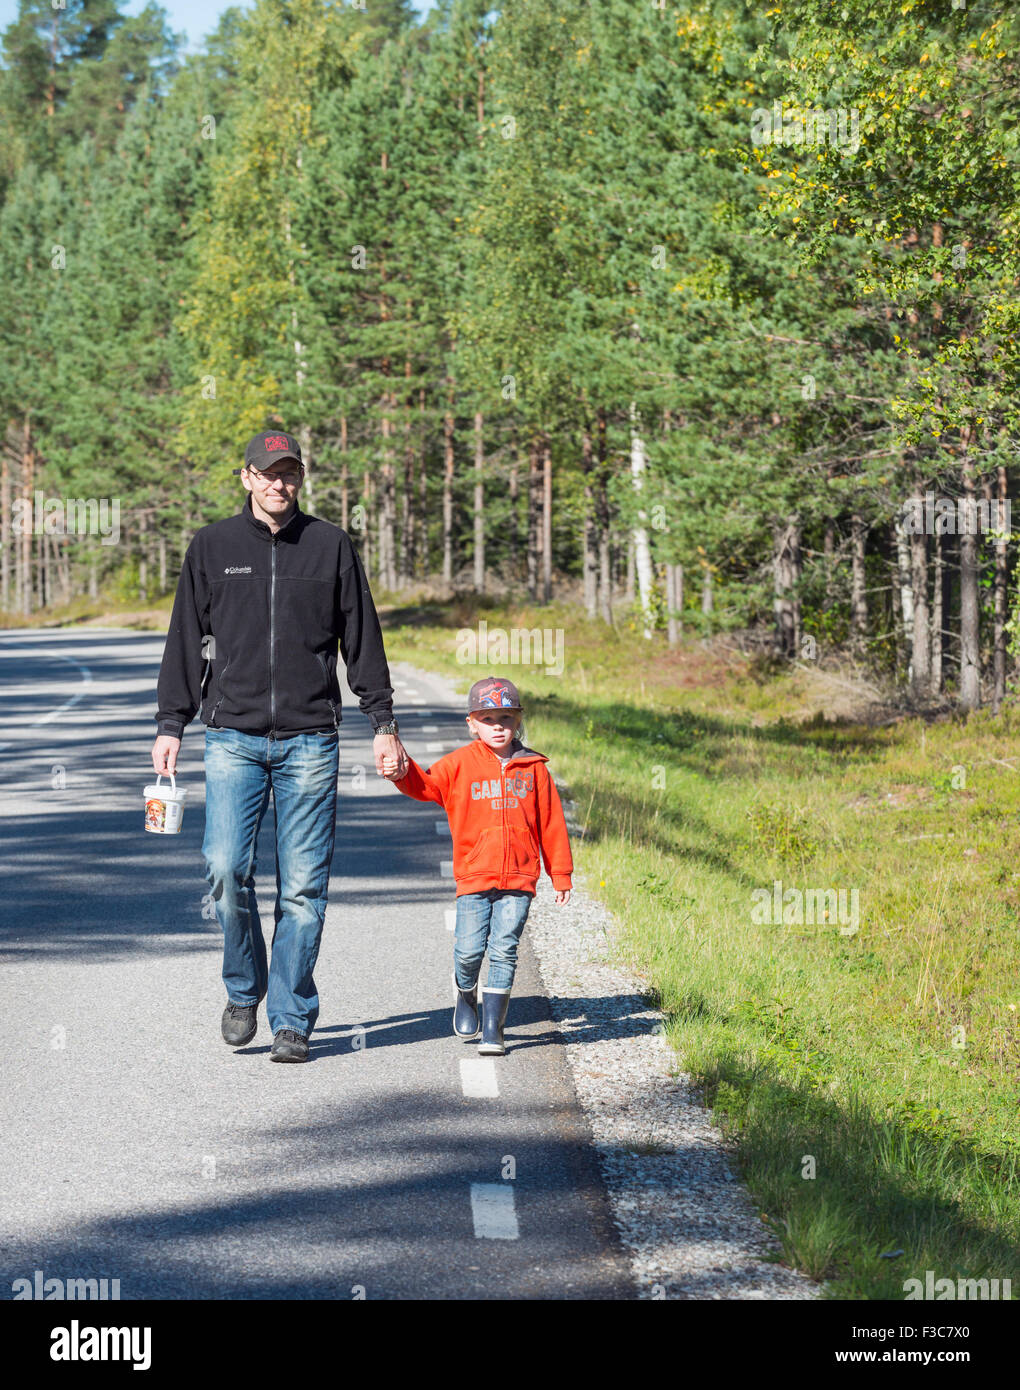 Daddy and child taking a walk - Stock Image